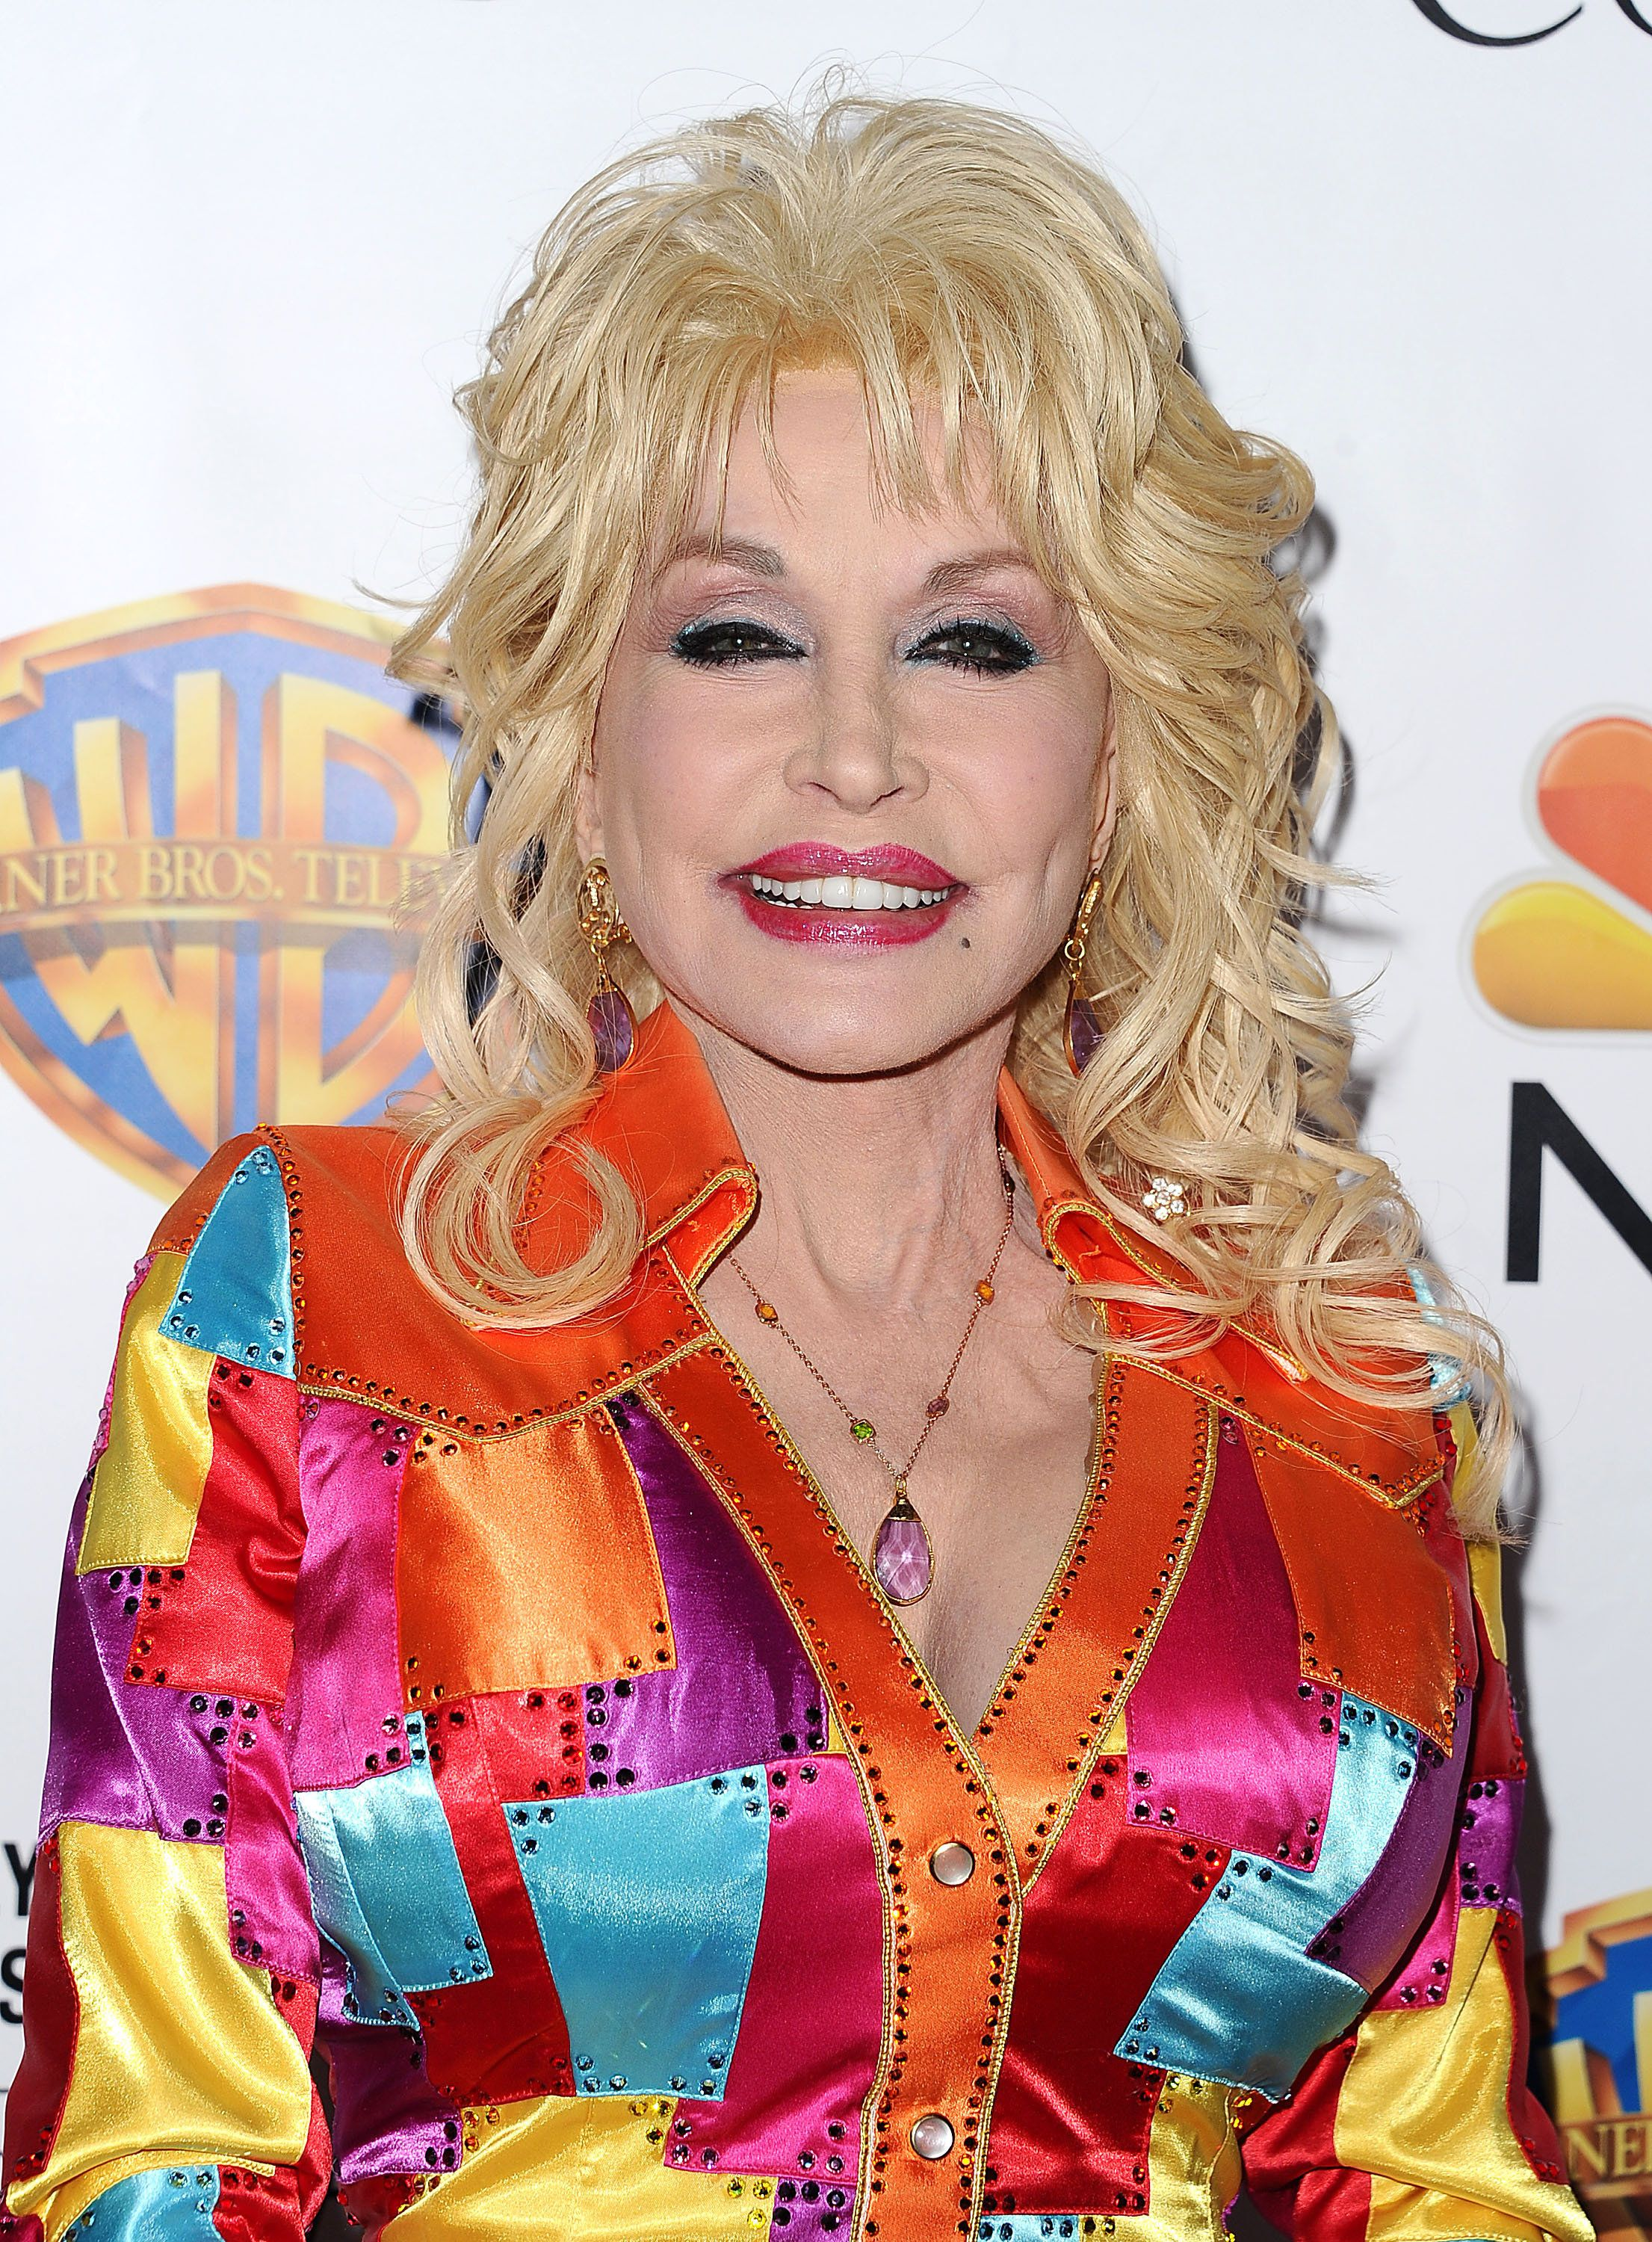 HOLLYWOOD, CA - DECEMBER 02:  Dolly Parton attends the premiere of 'Dolly Parton's Coat Of Many Colors' at the Egyptian Theatre on December 2, 2015 in Hollywood, California.  (Photo by Jason LaVeris/FilmMagic)